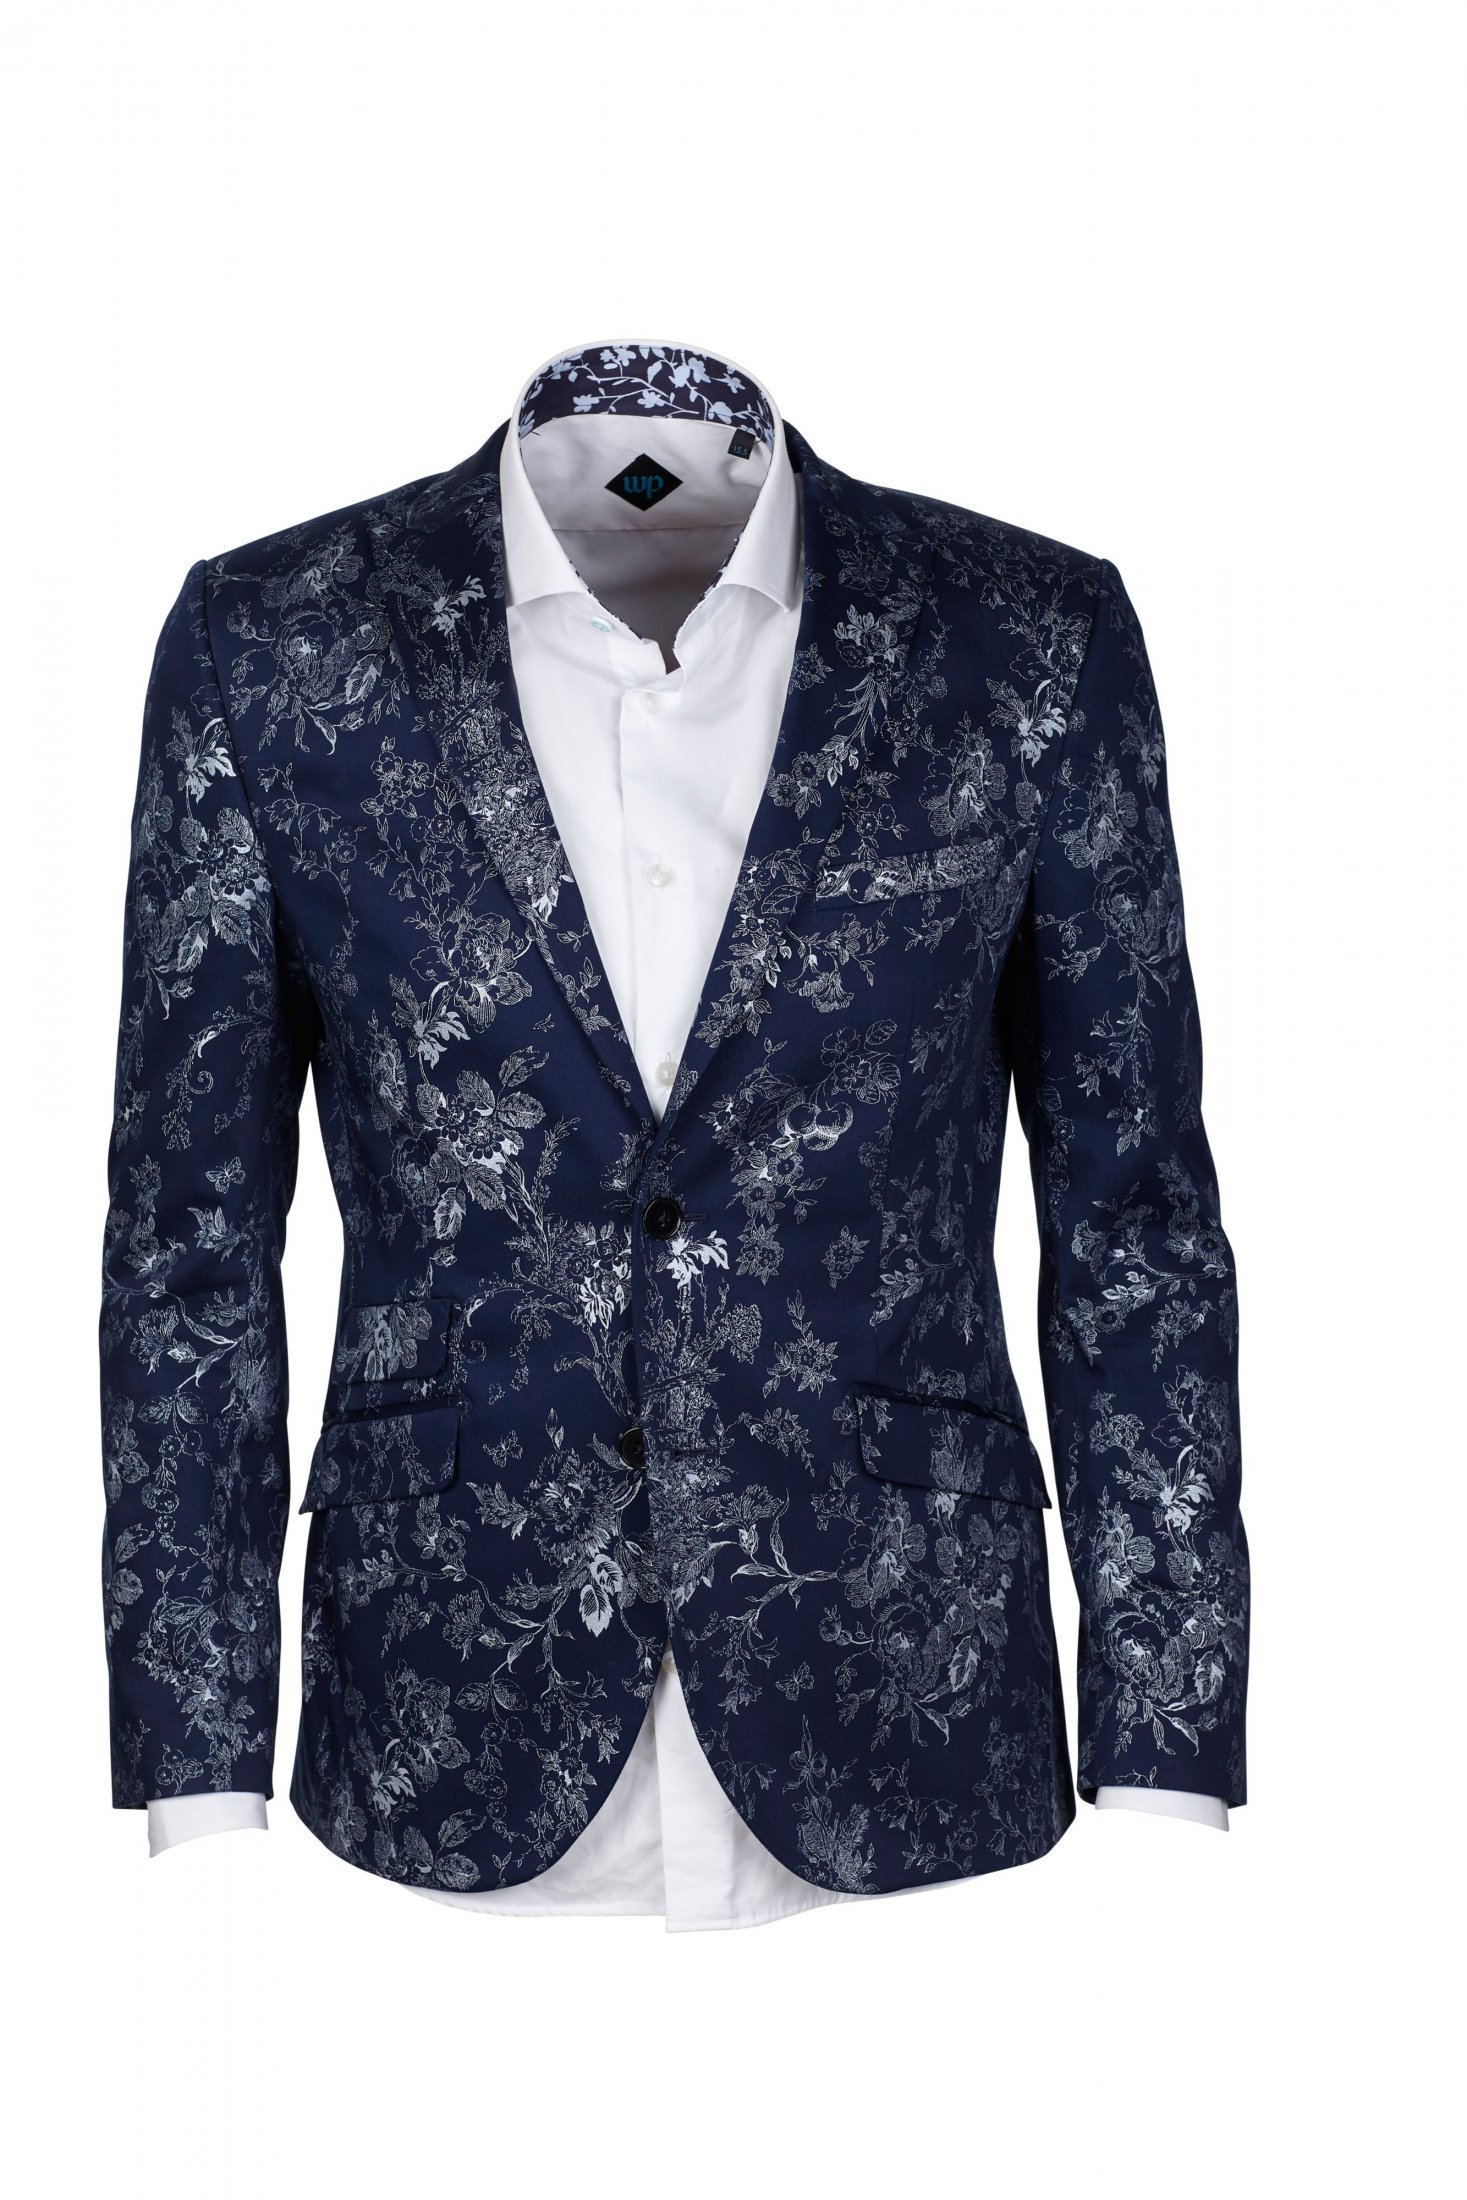 WP Diego Cotton Floral Print Jacket £79.50